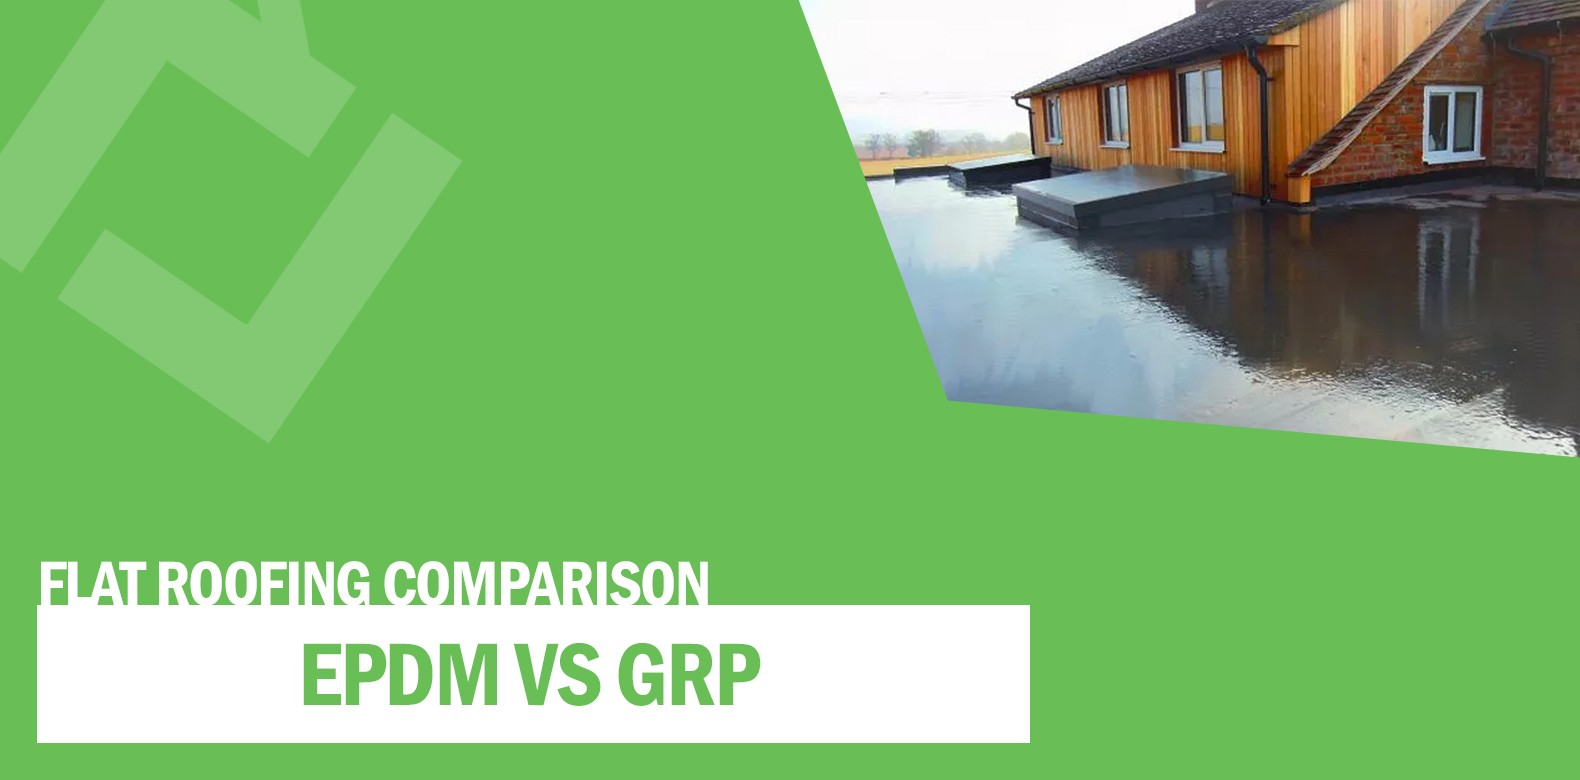 EPDM vs GRP Flat Roofing